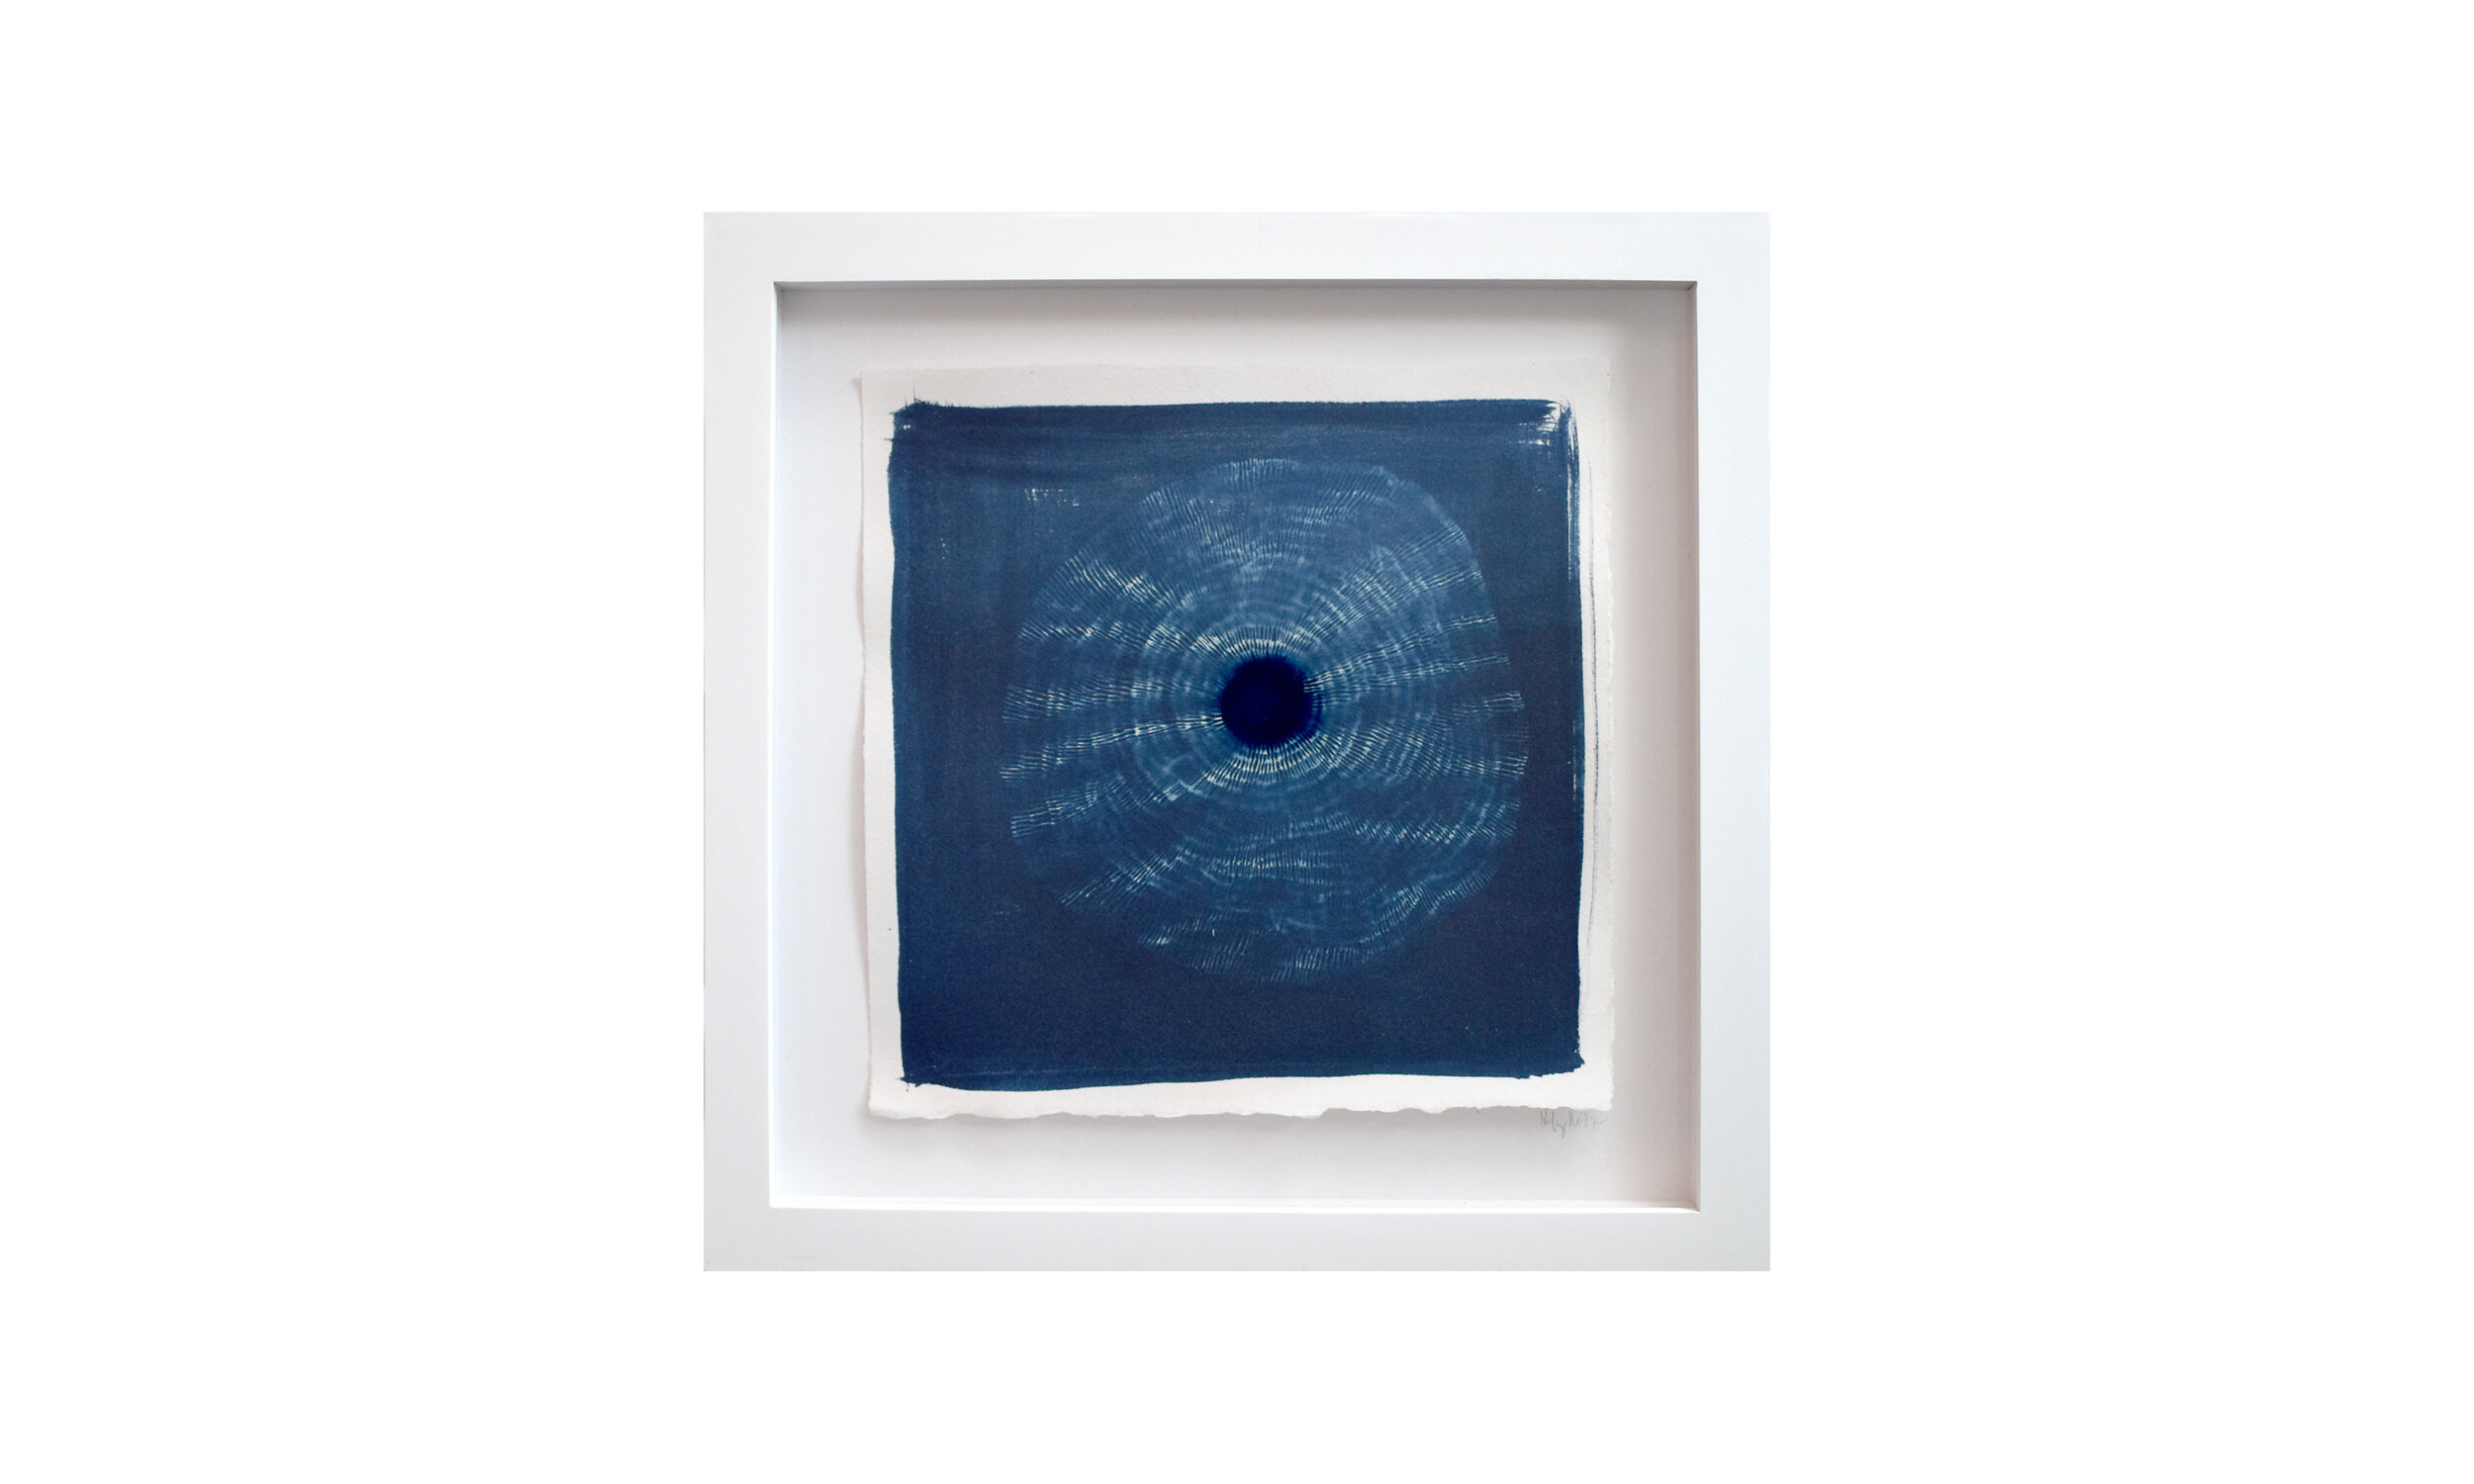 """Haeligewielle II , cyanotype print, 13.25"""" x 13.25"""", framed, $ 750    Contact us for purchase"""